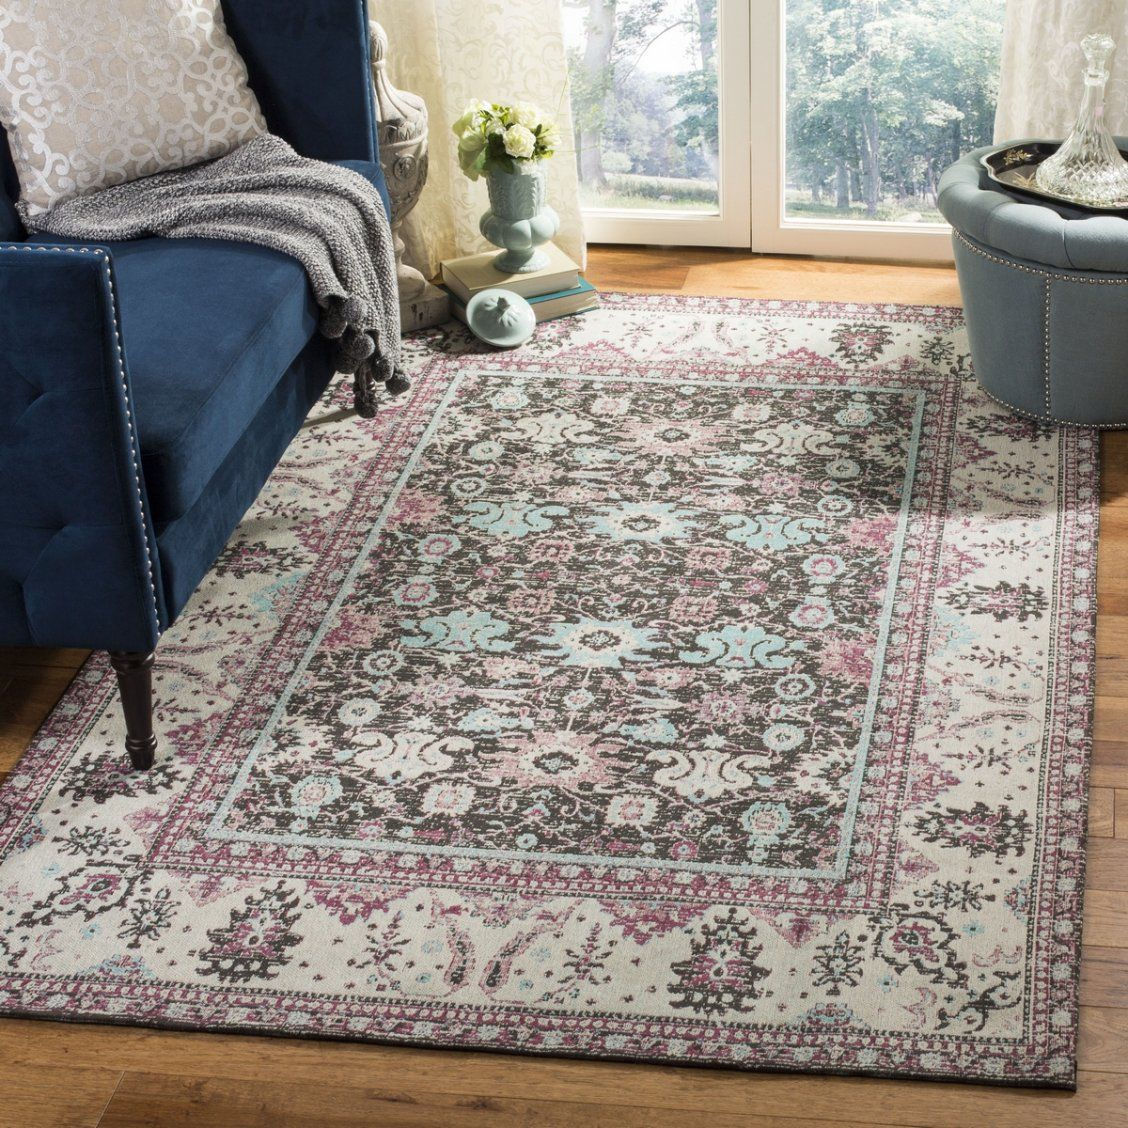 The Classic Vintage Collection Turns Traditional Rug